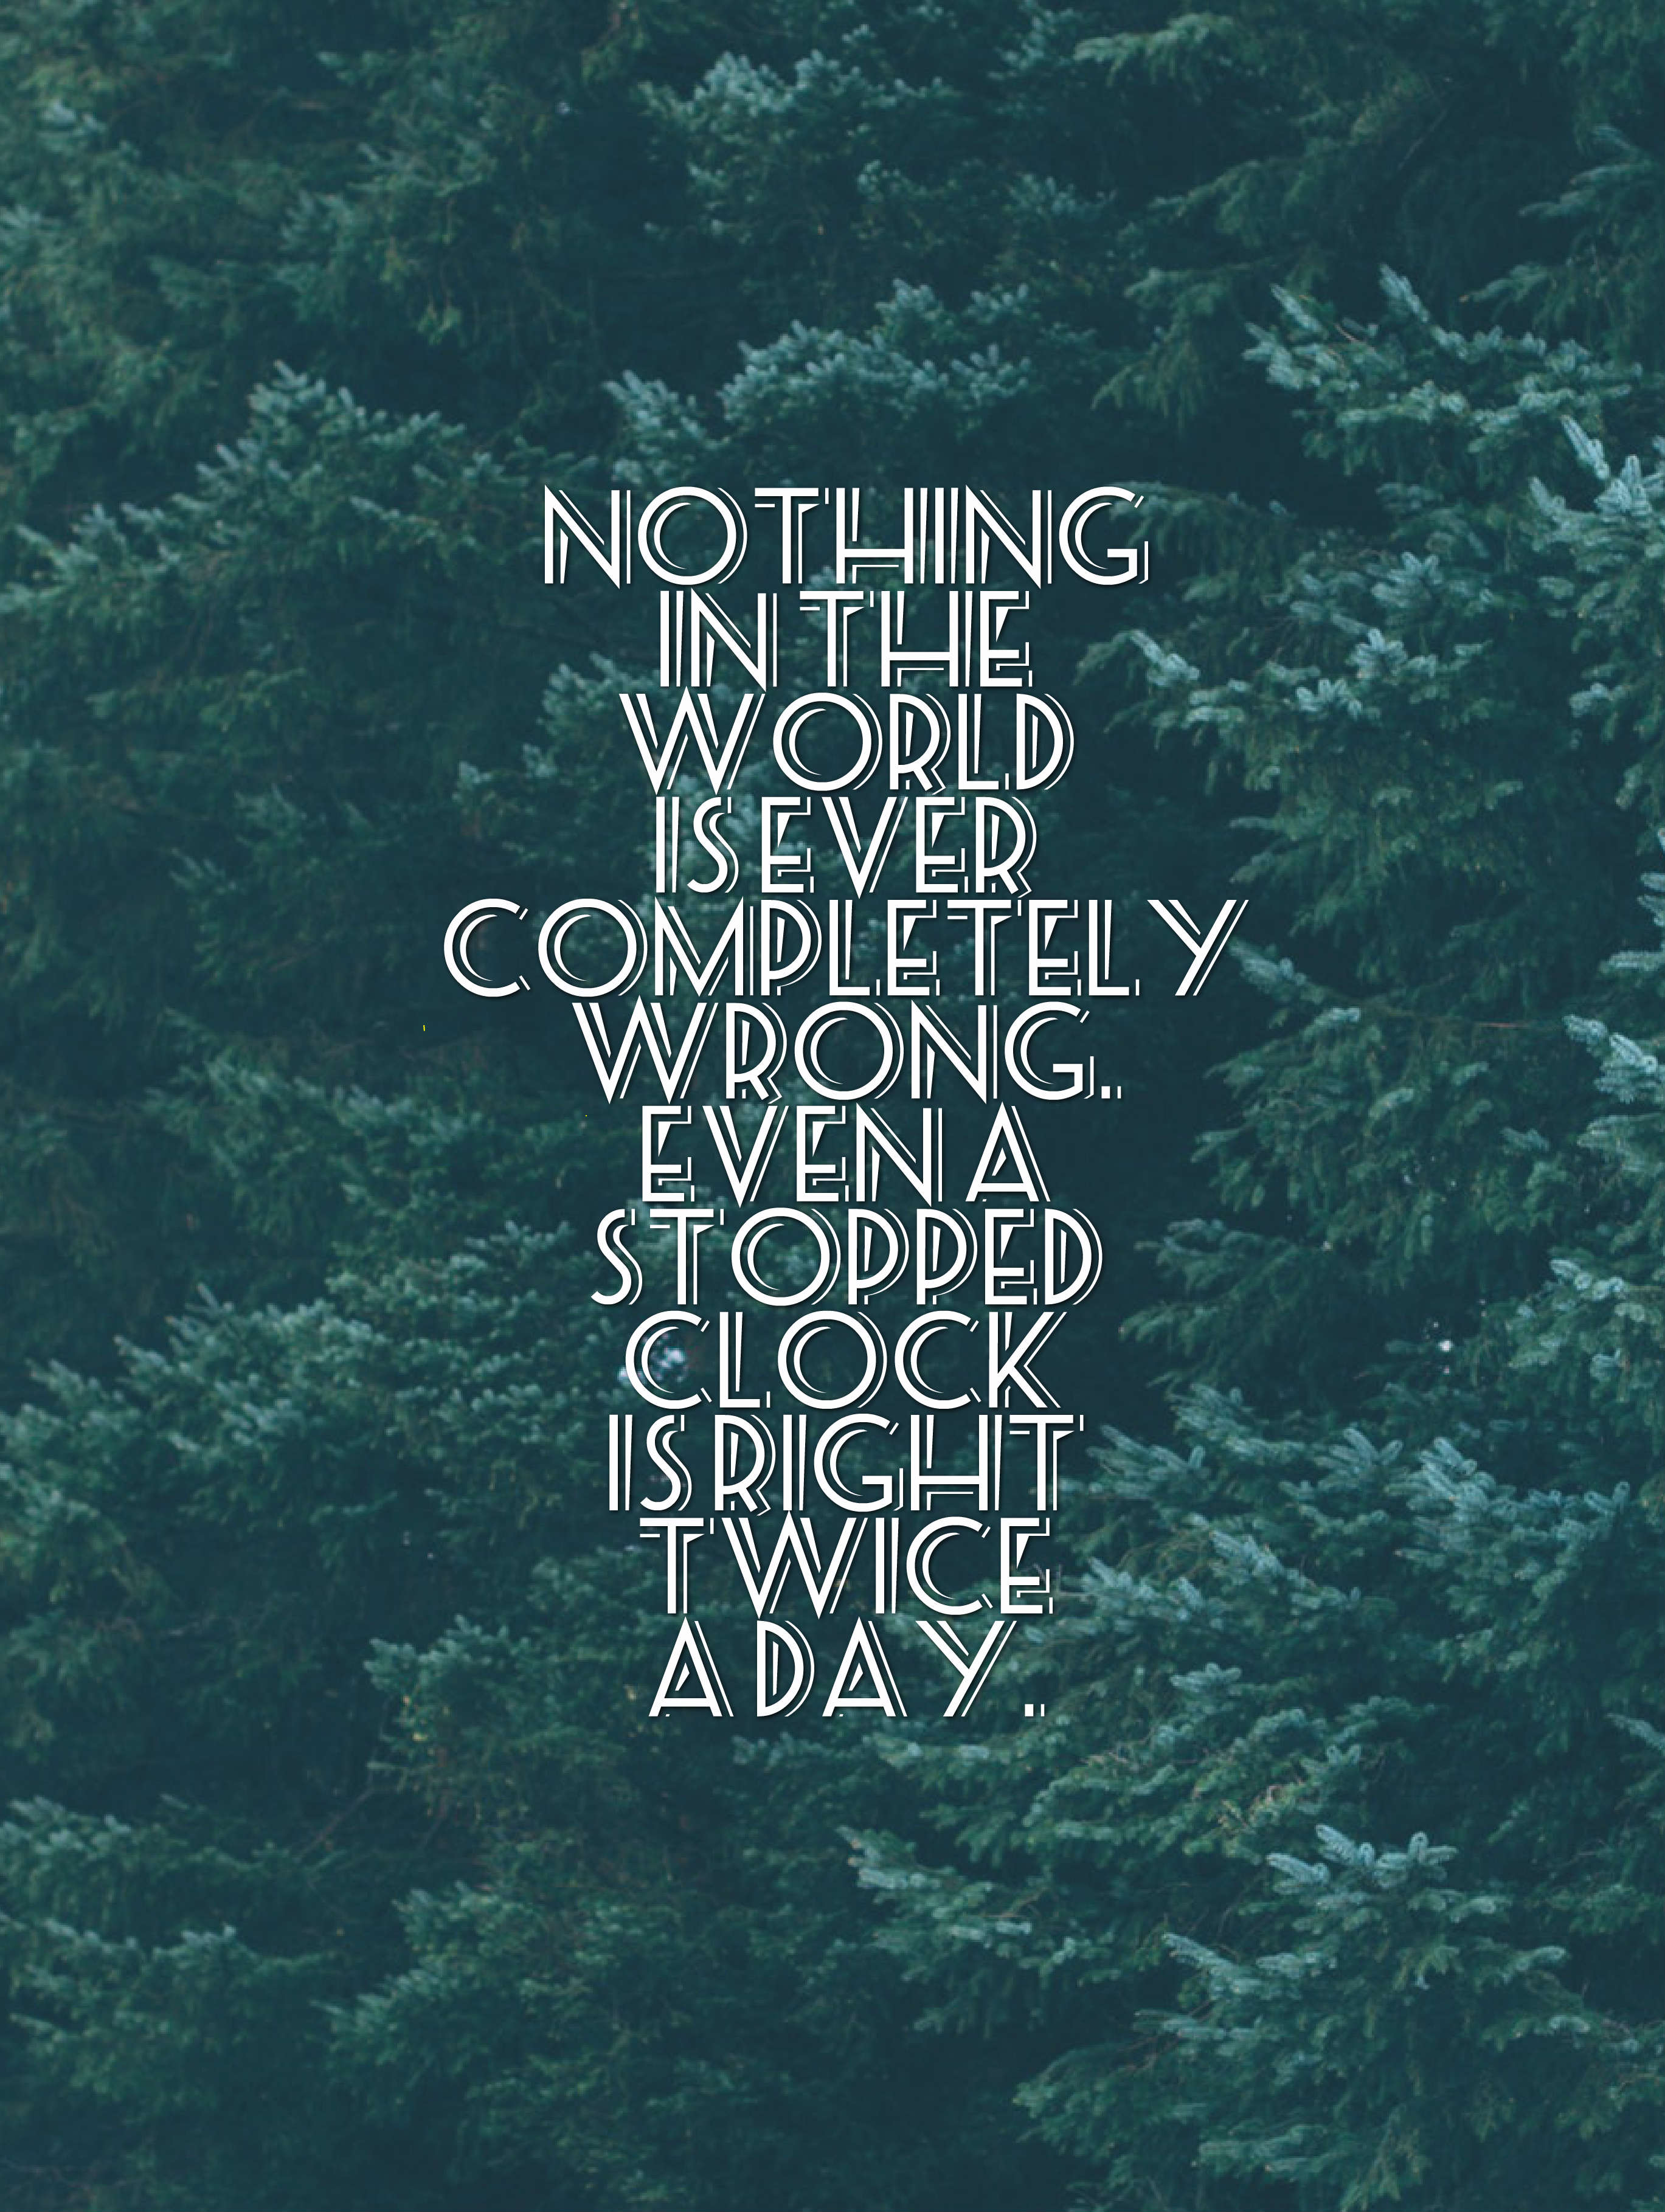 Quotes image of Nothing in the world is ever completely wrong. Even a stopped clock is right twice a day.